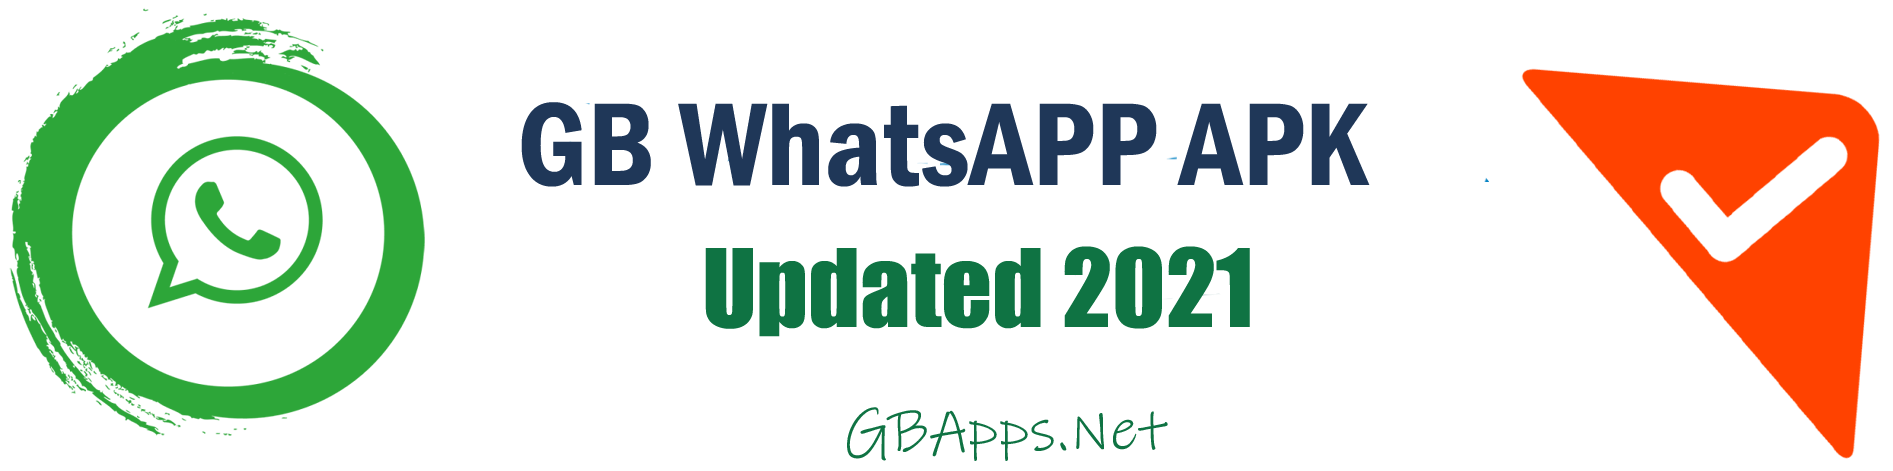 Gbwhatsapp Apk Download Updated August 2021 Anti Ban Official